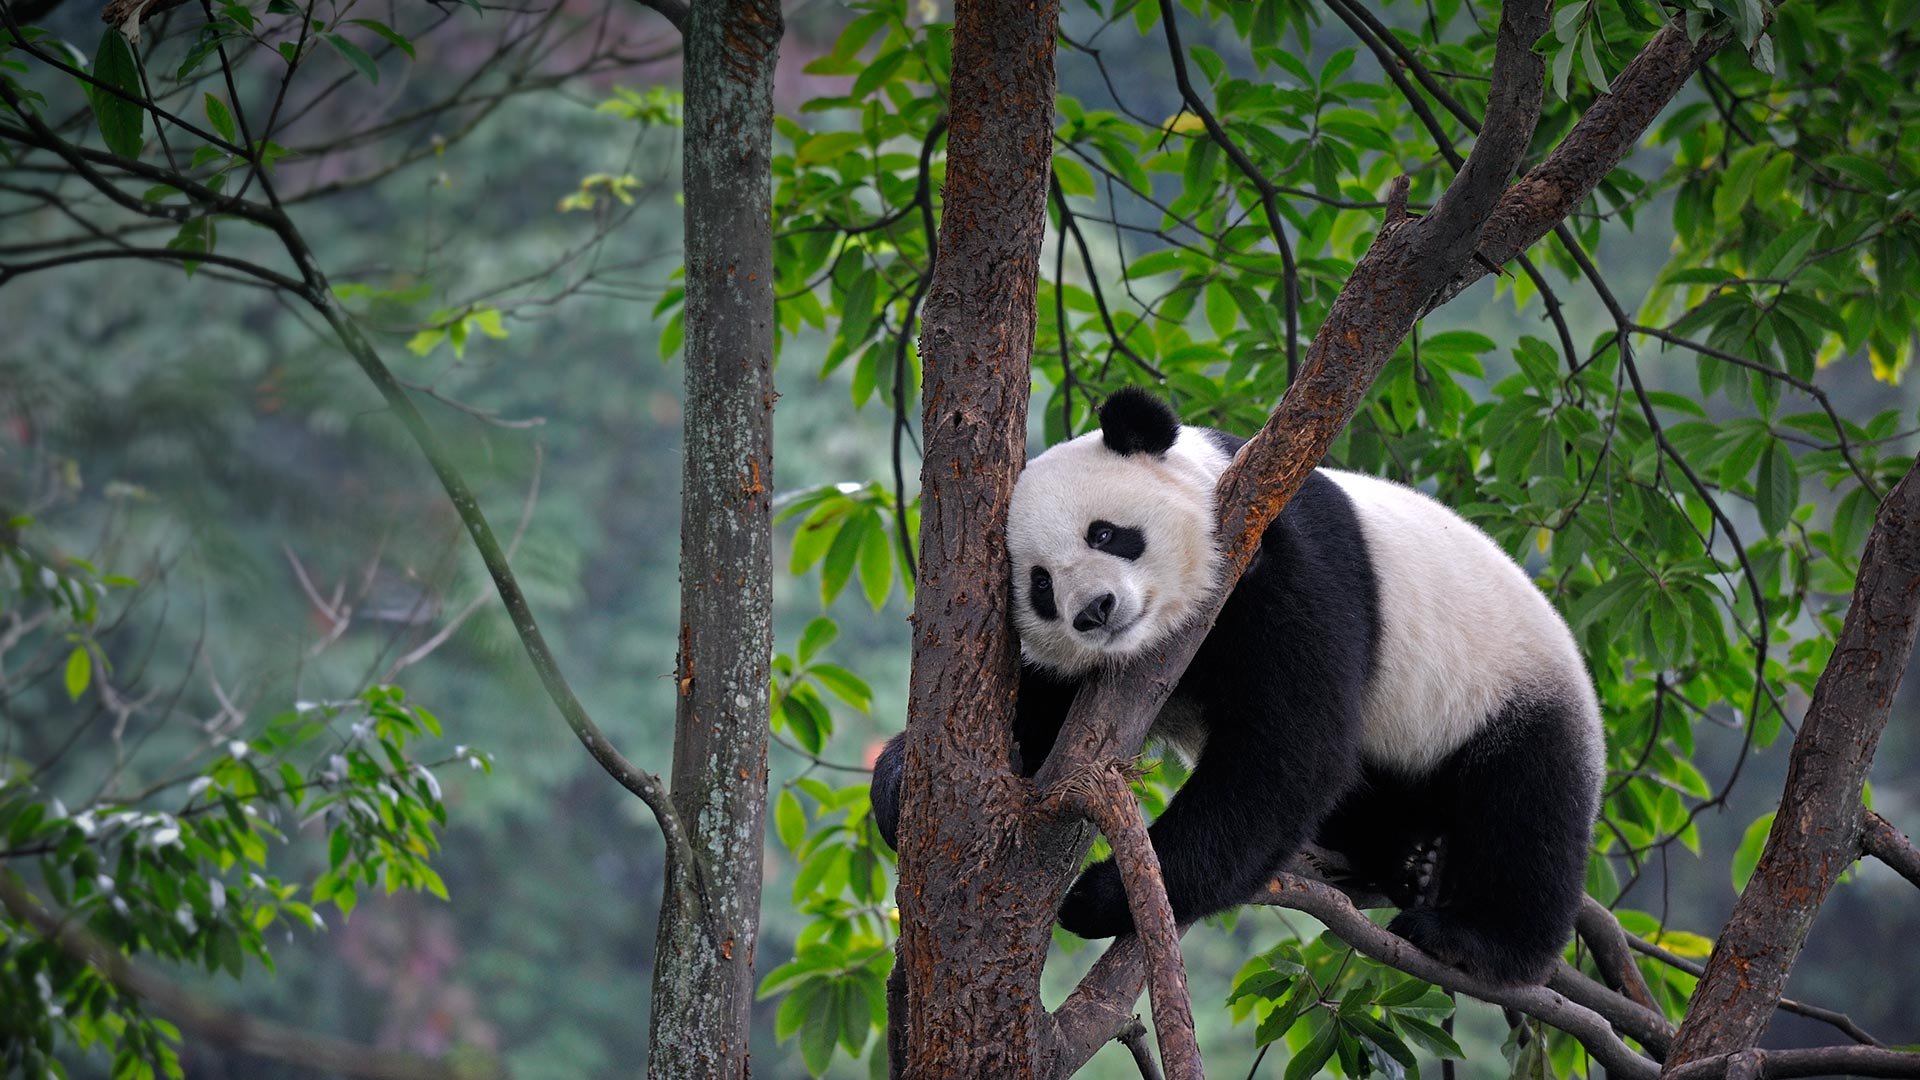 Giant panda at Bifengxia Panda Base in Ya'an, China (© Eric Baccega/Minden Pictures)